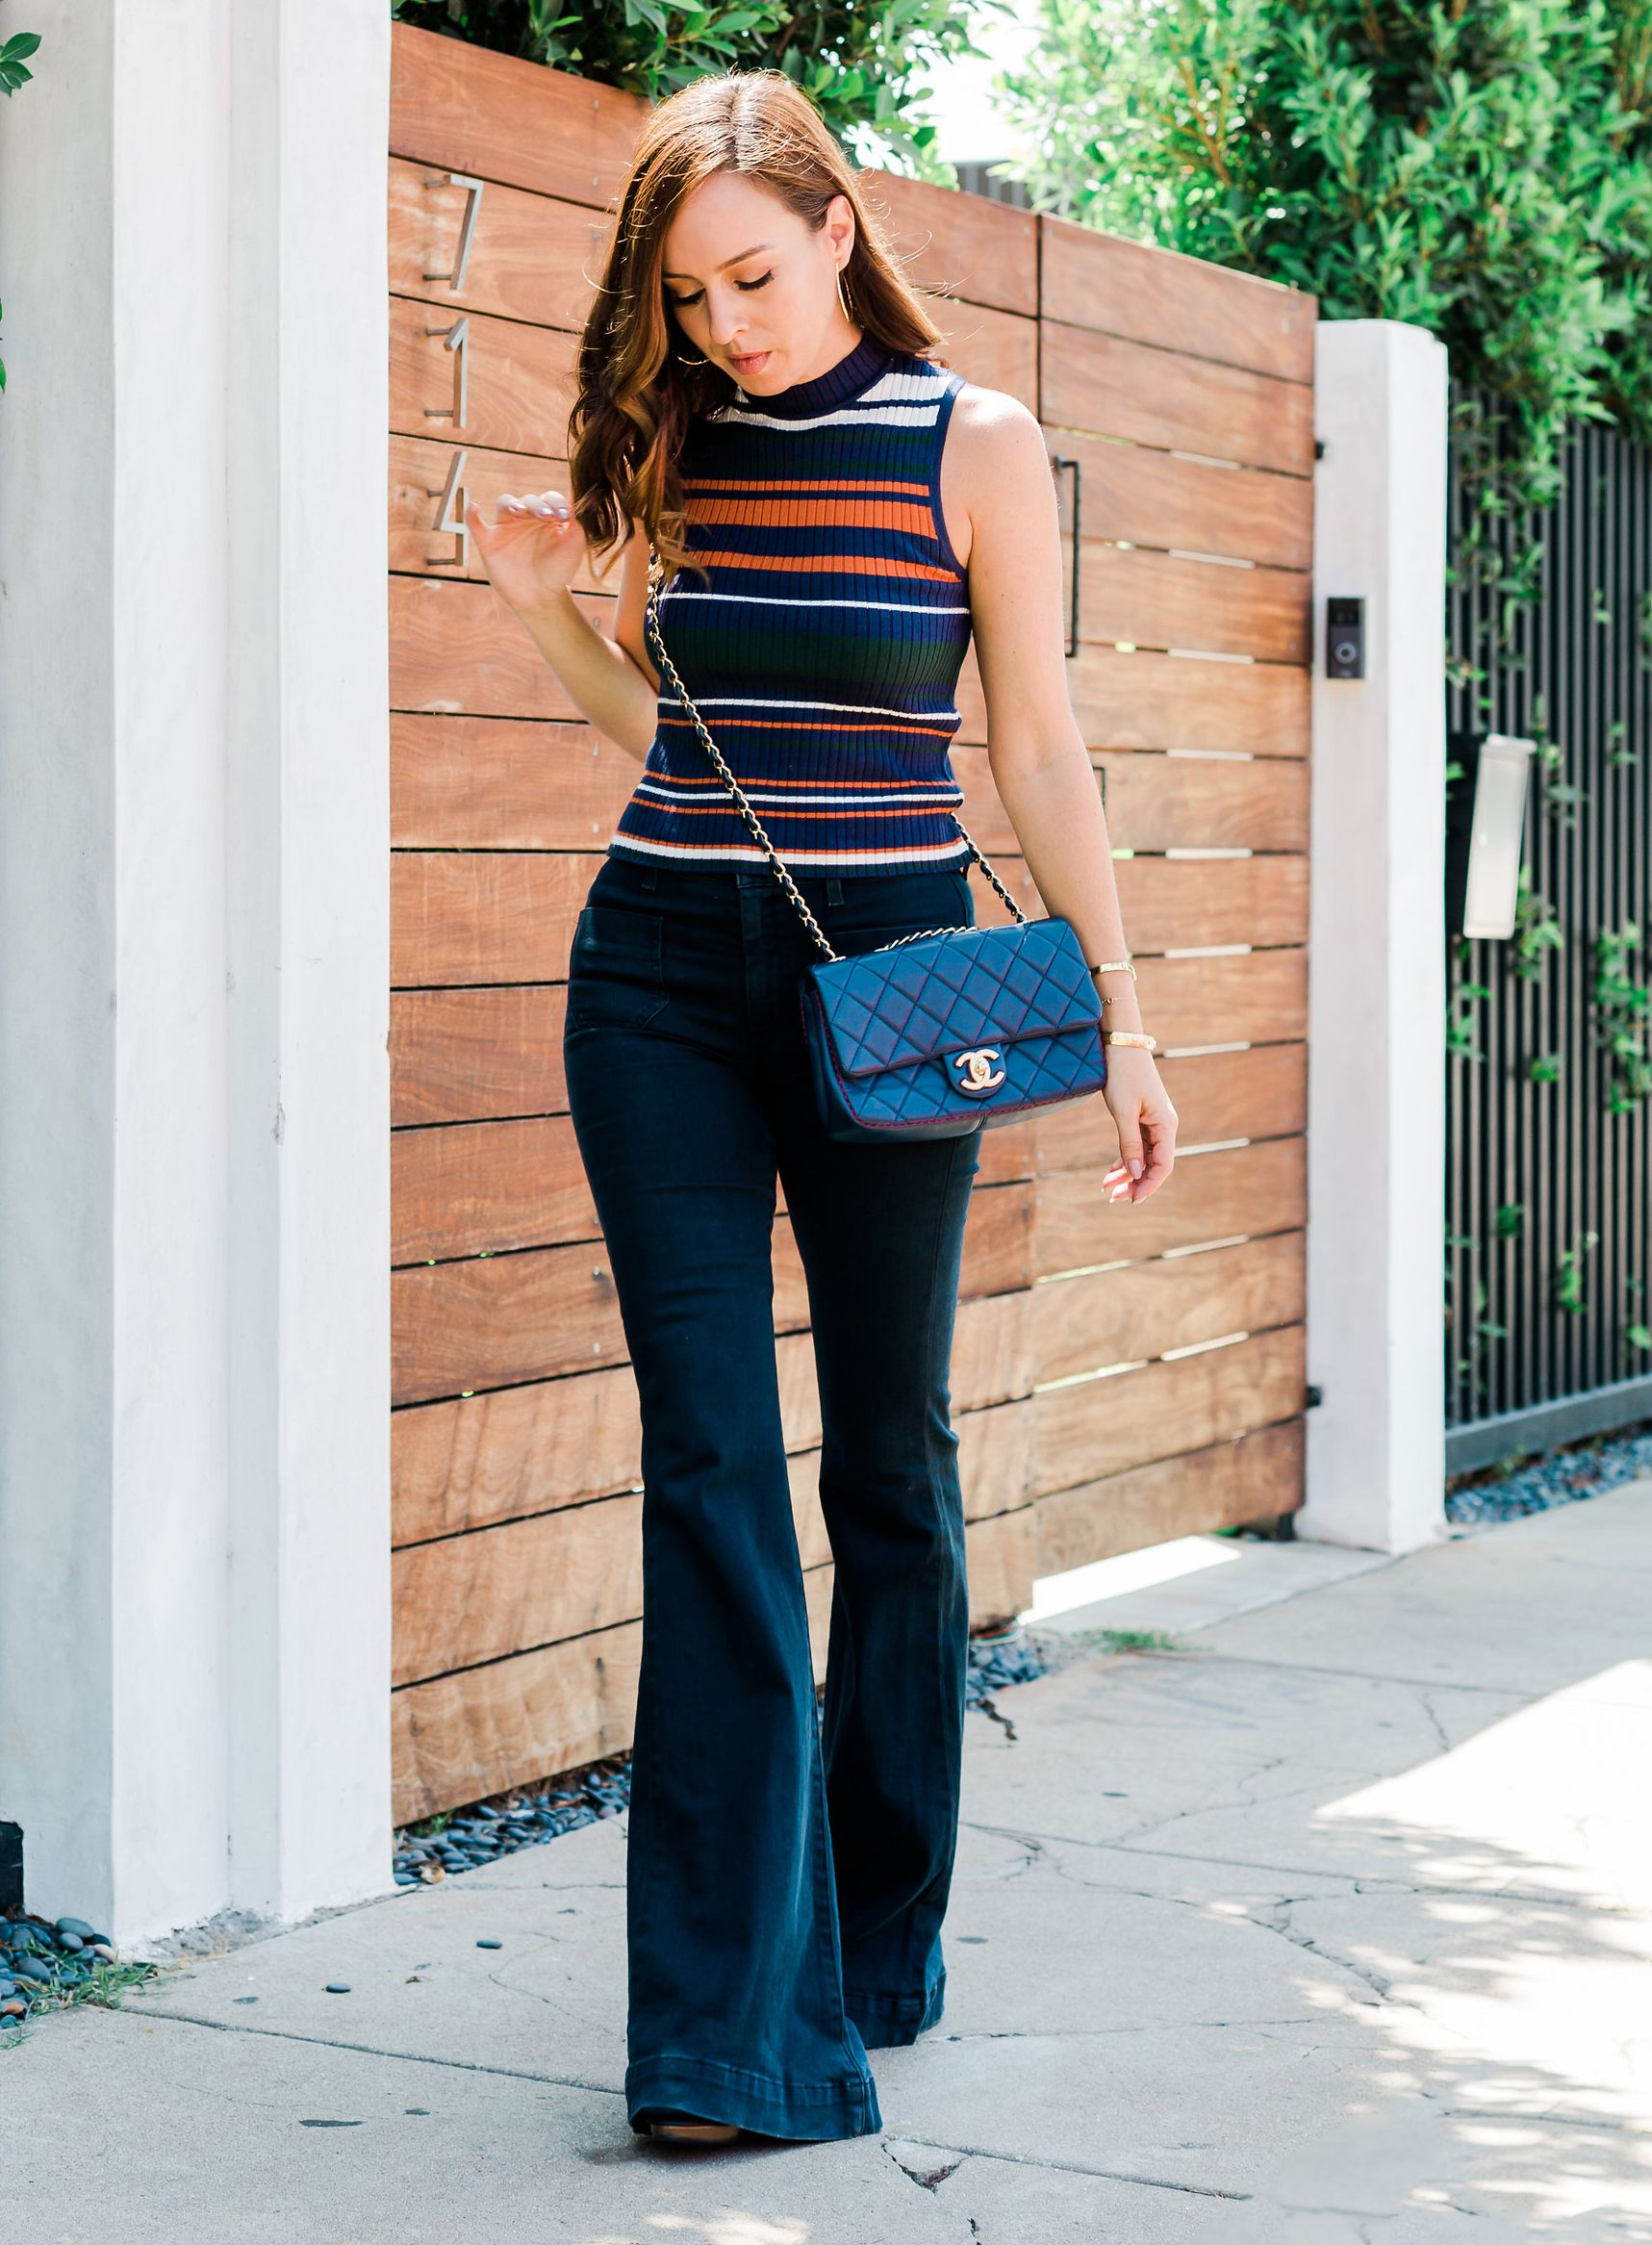 b99c88590e Sydne Style shows how to wear sleeveless turtlenecks for fall with wide leg  jeans  stripes  turtleneck  chanel